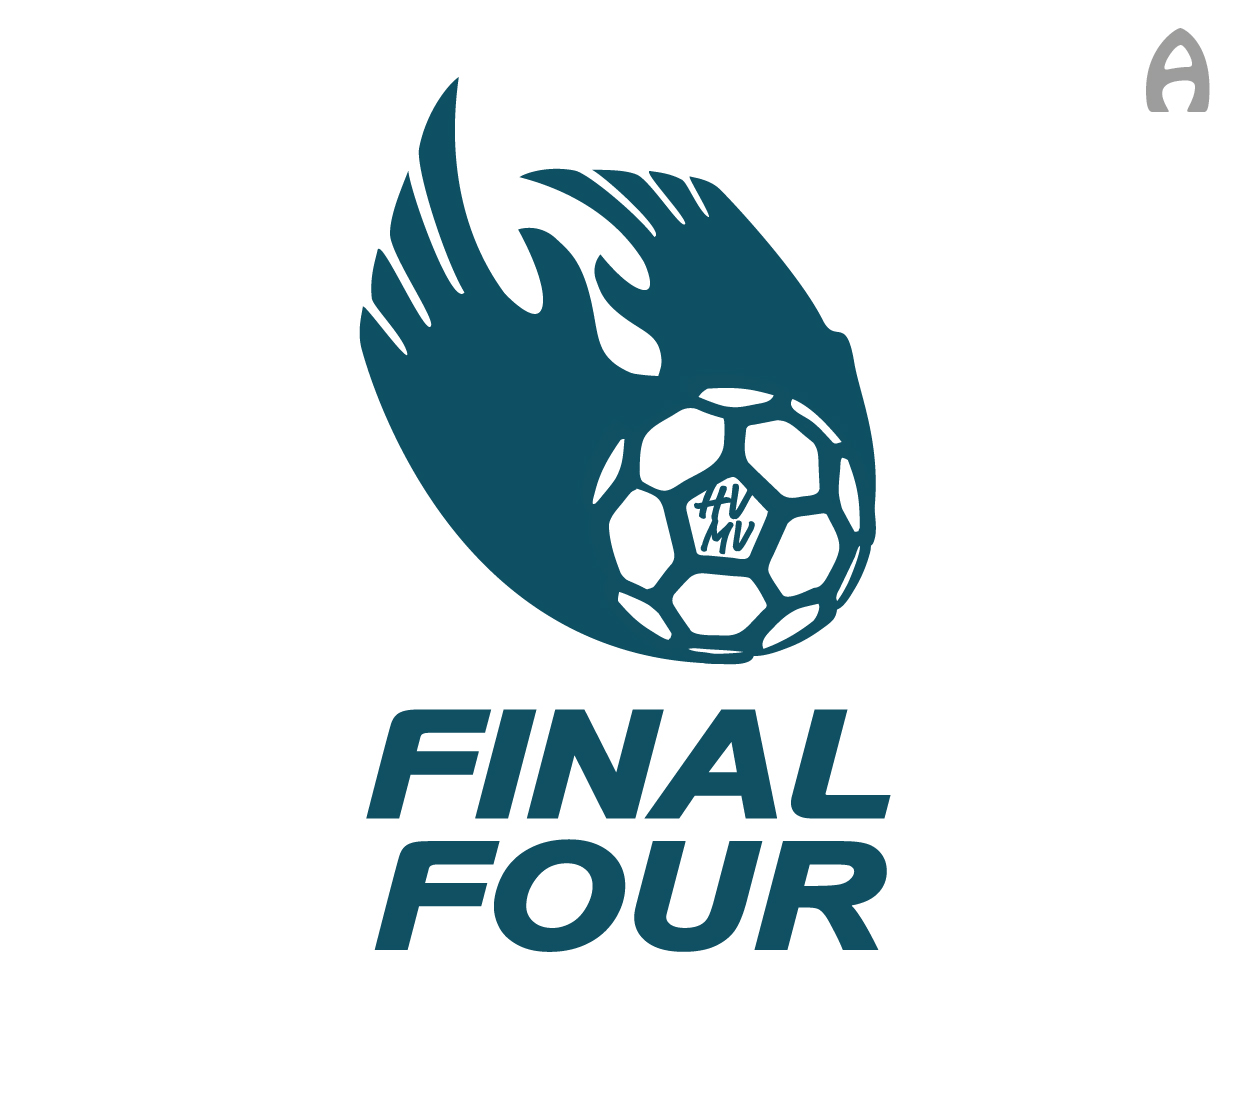 Logoerstellung Grafikdesign Anja Wießmann Neubrandenburg Final Four